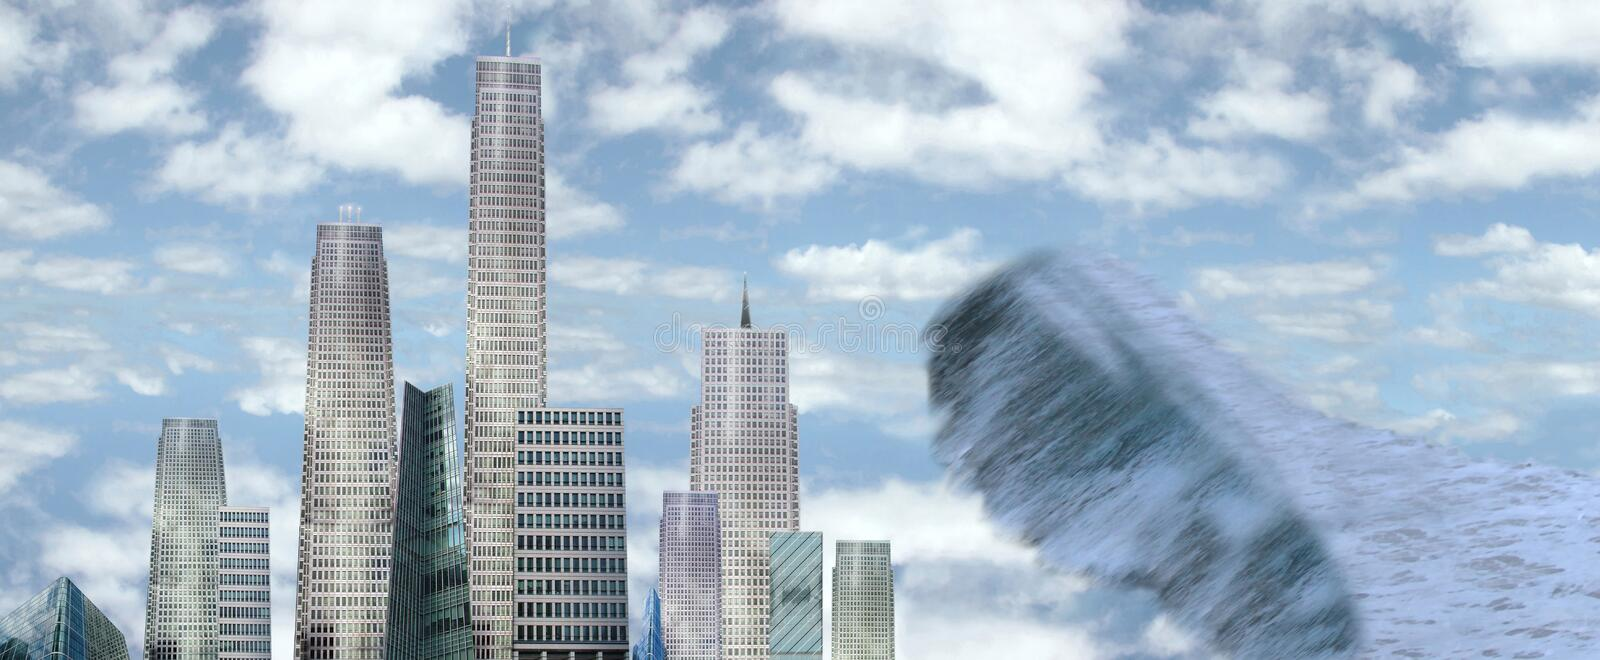 Sky scrapers with tidal wave vector illustration